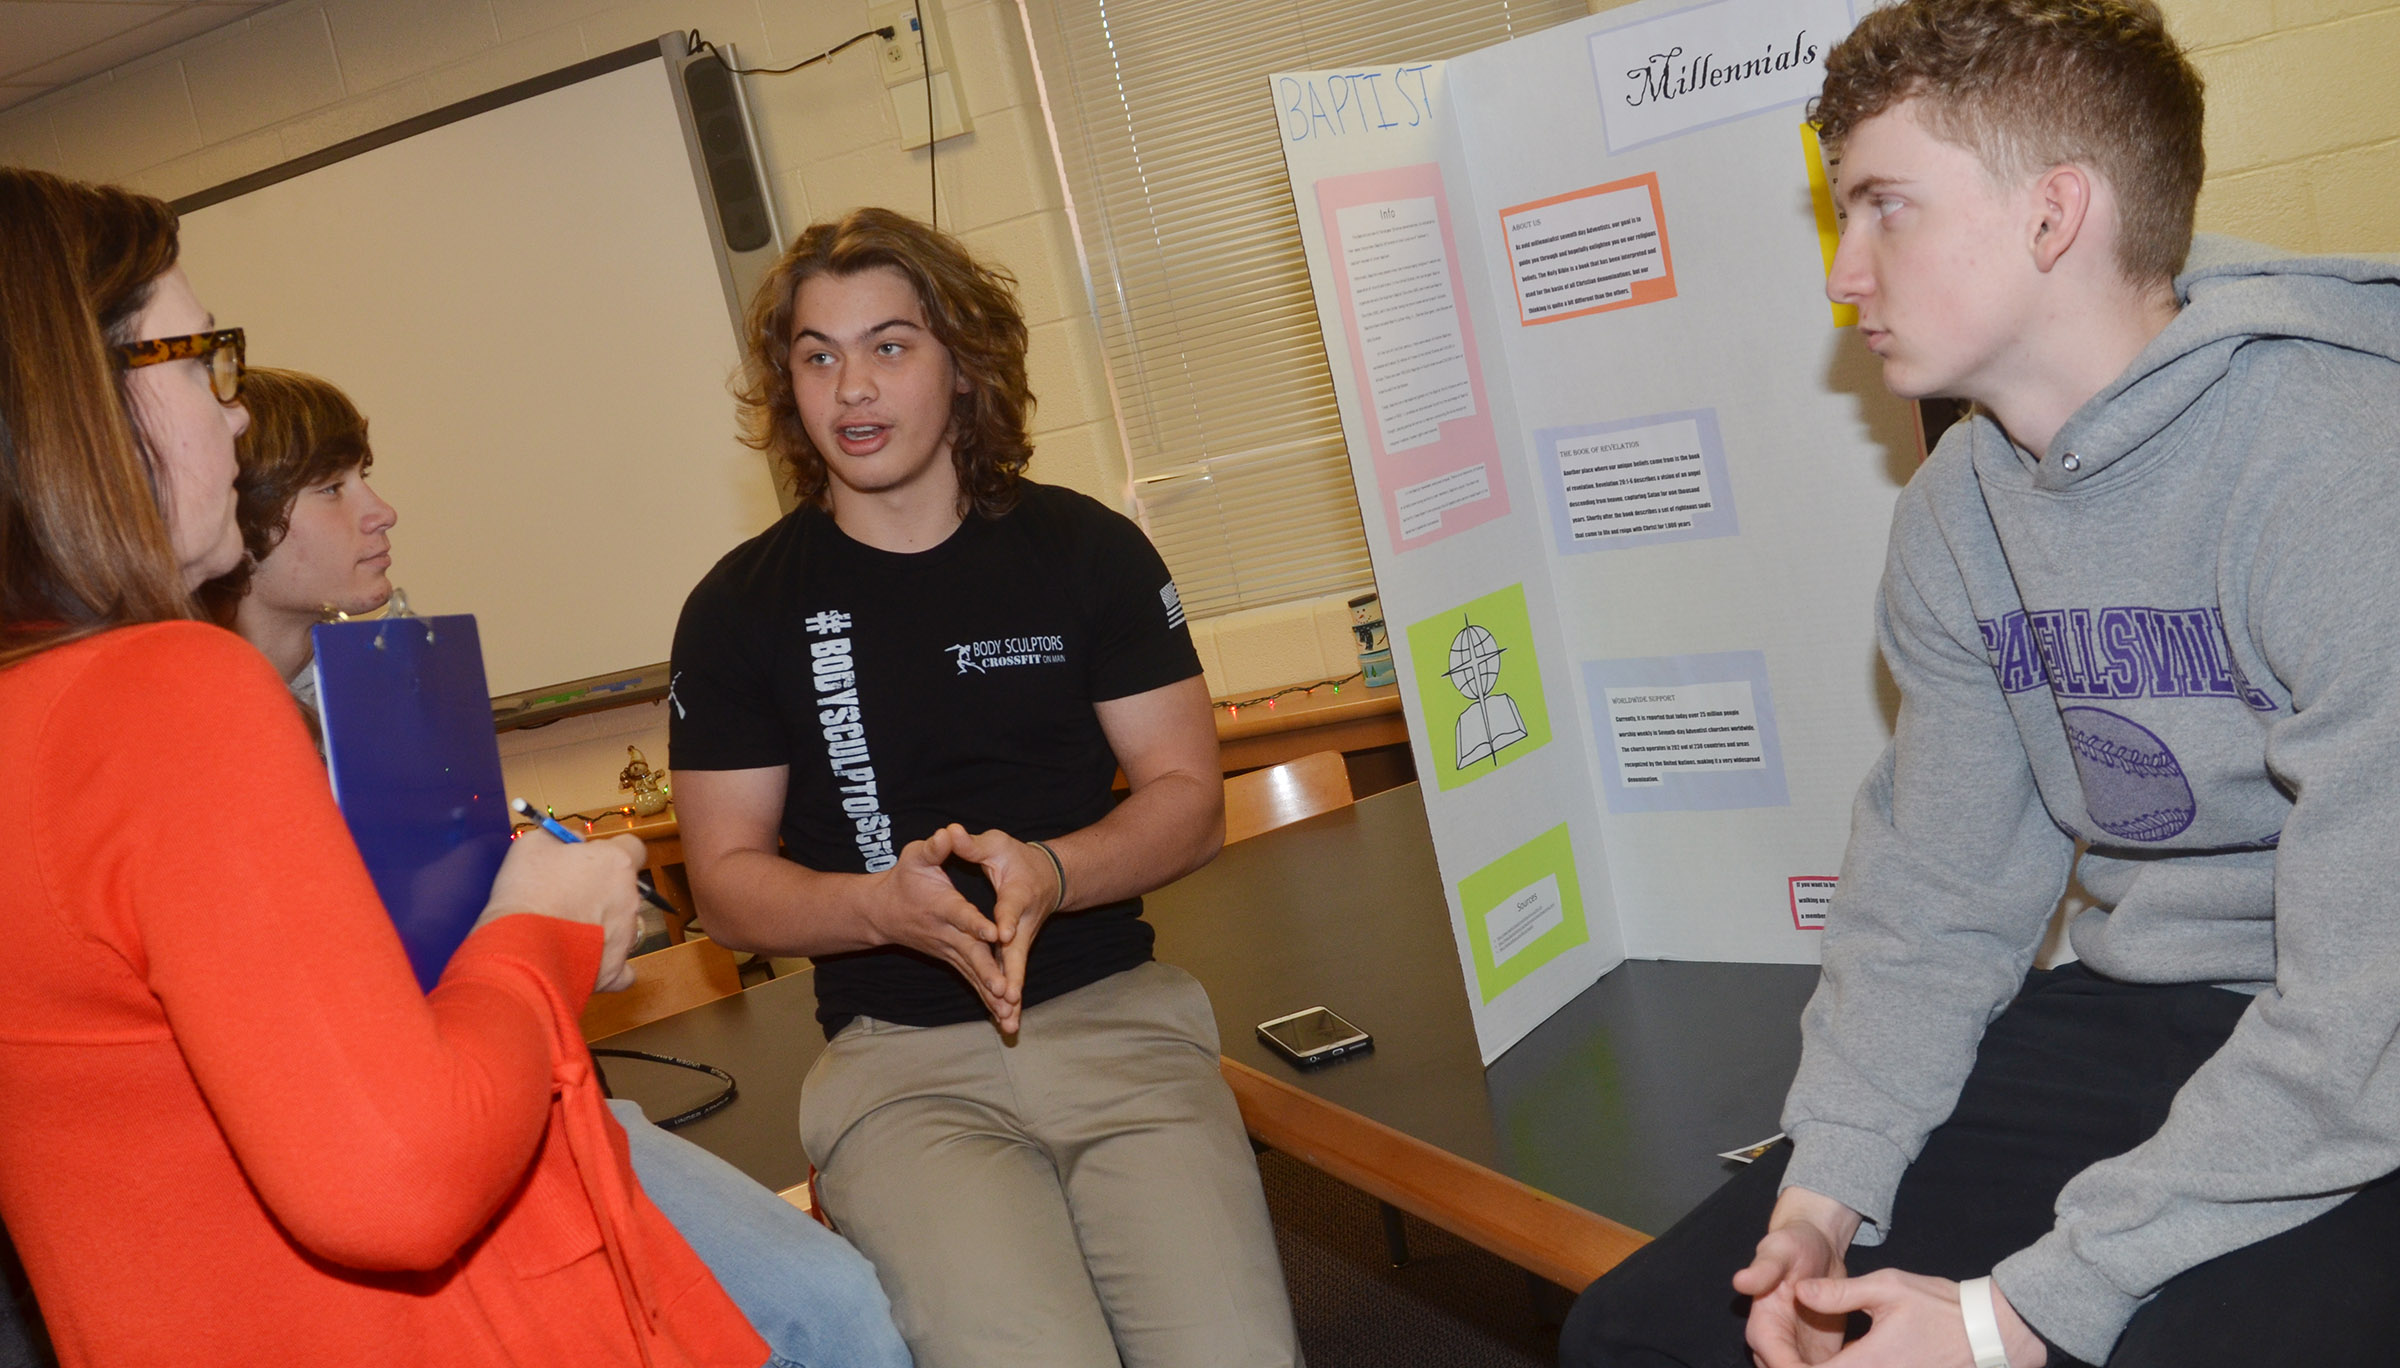 CHS juniors Treyce Mattingly, at left, and Jackson Hinton present about the millennials reform movements.